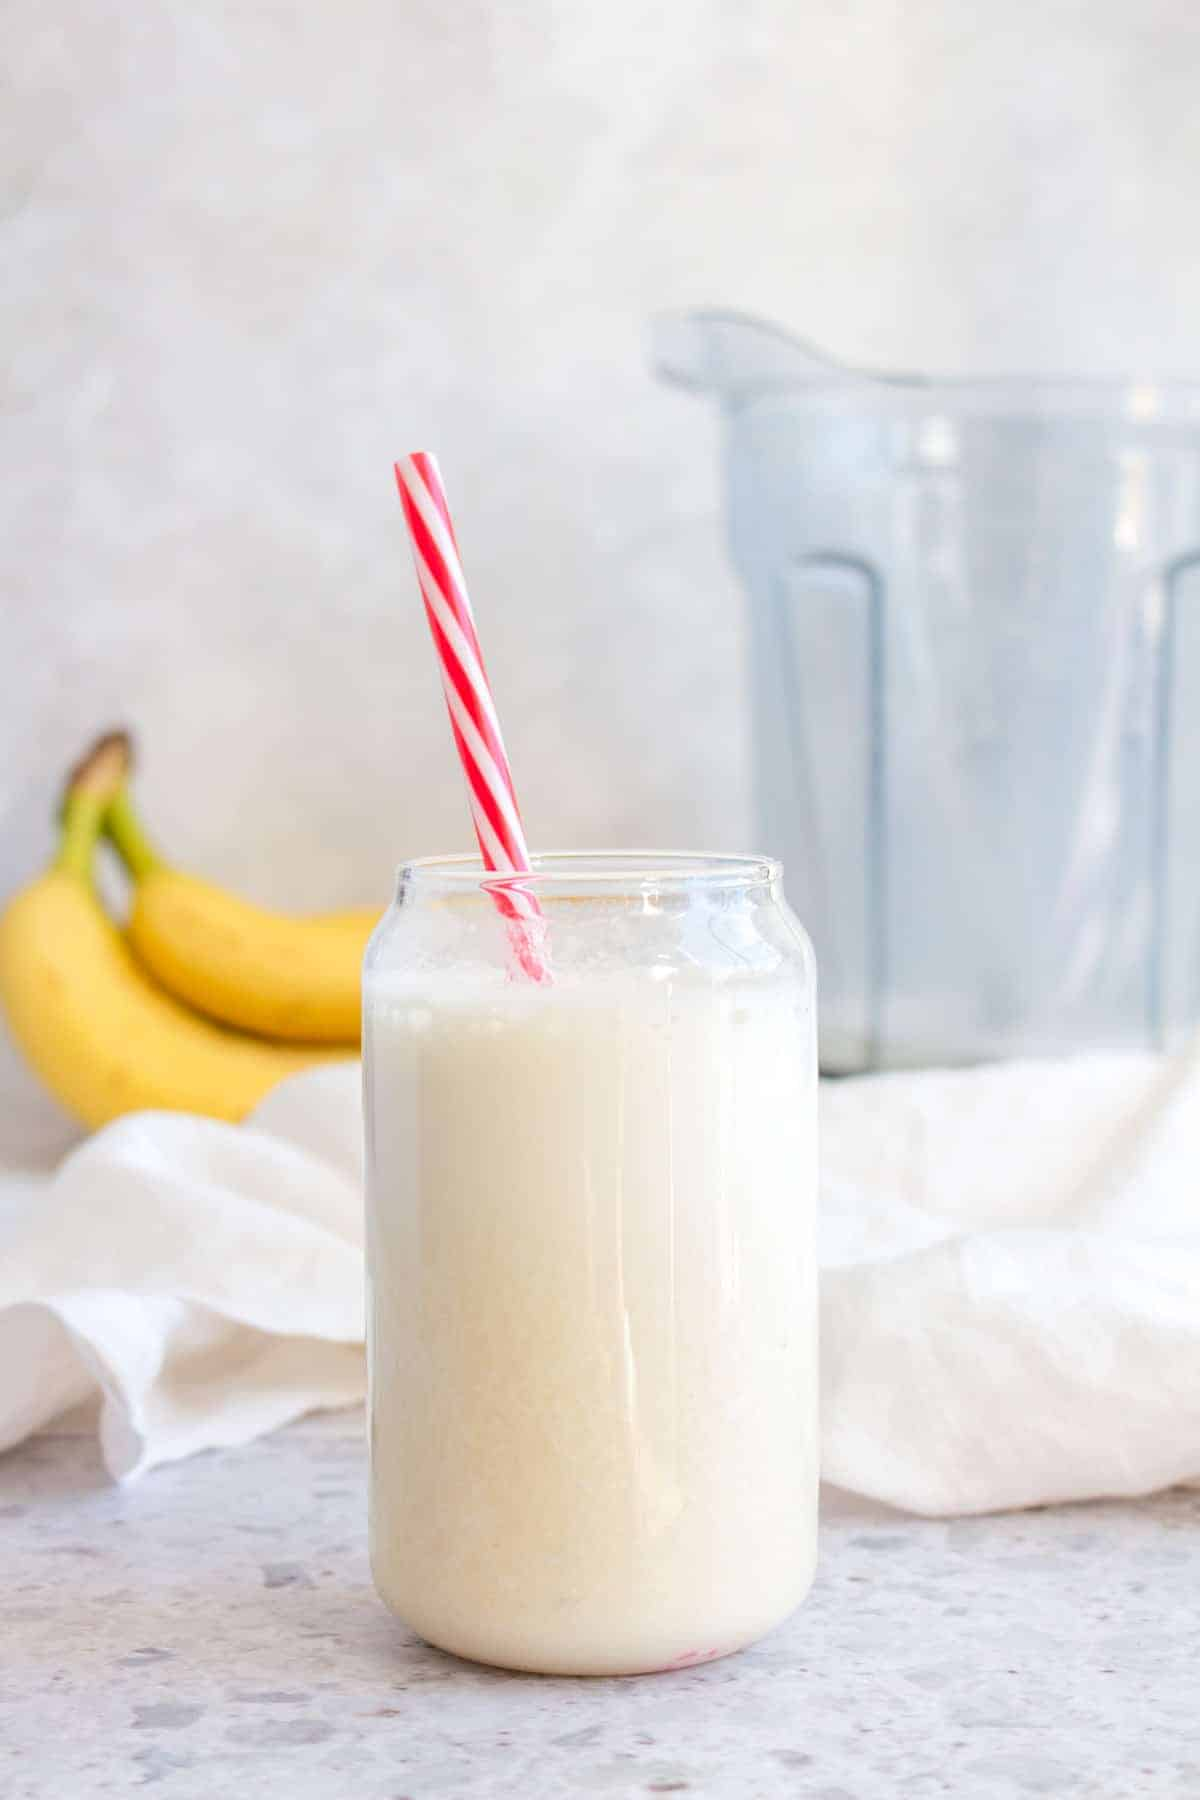 Banana milk in a cup with a red and white straw with bananas and a vitamix in the background.